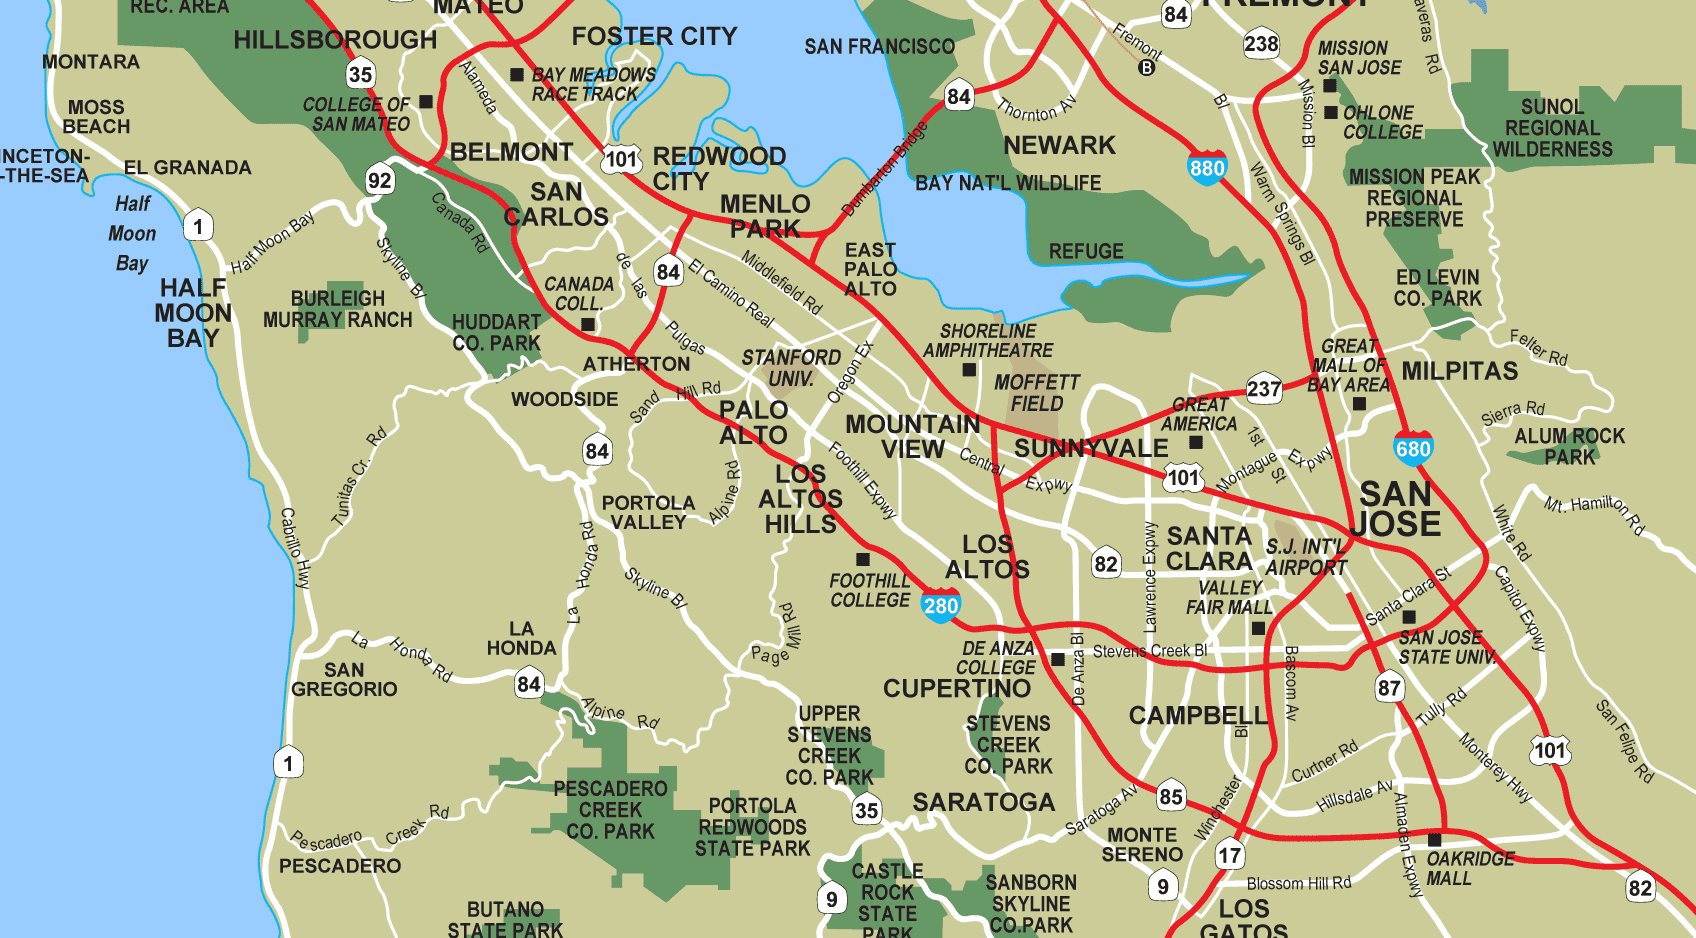 South Bay Palo Alto Mapsofnet